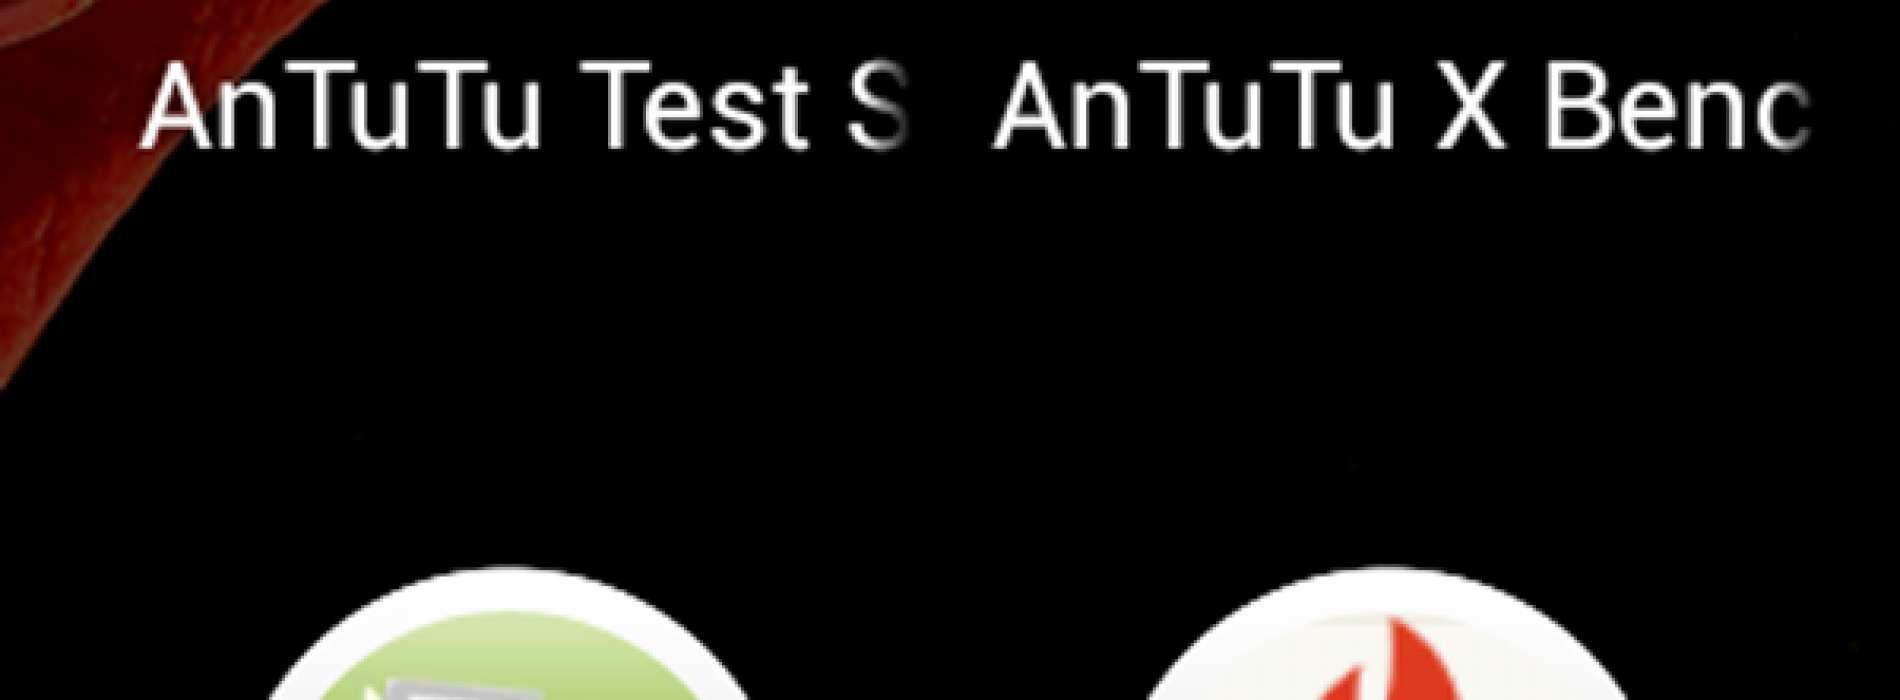 AnTuTu releases Benchmark X Edition to fight score fraud